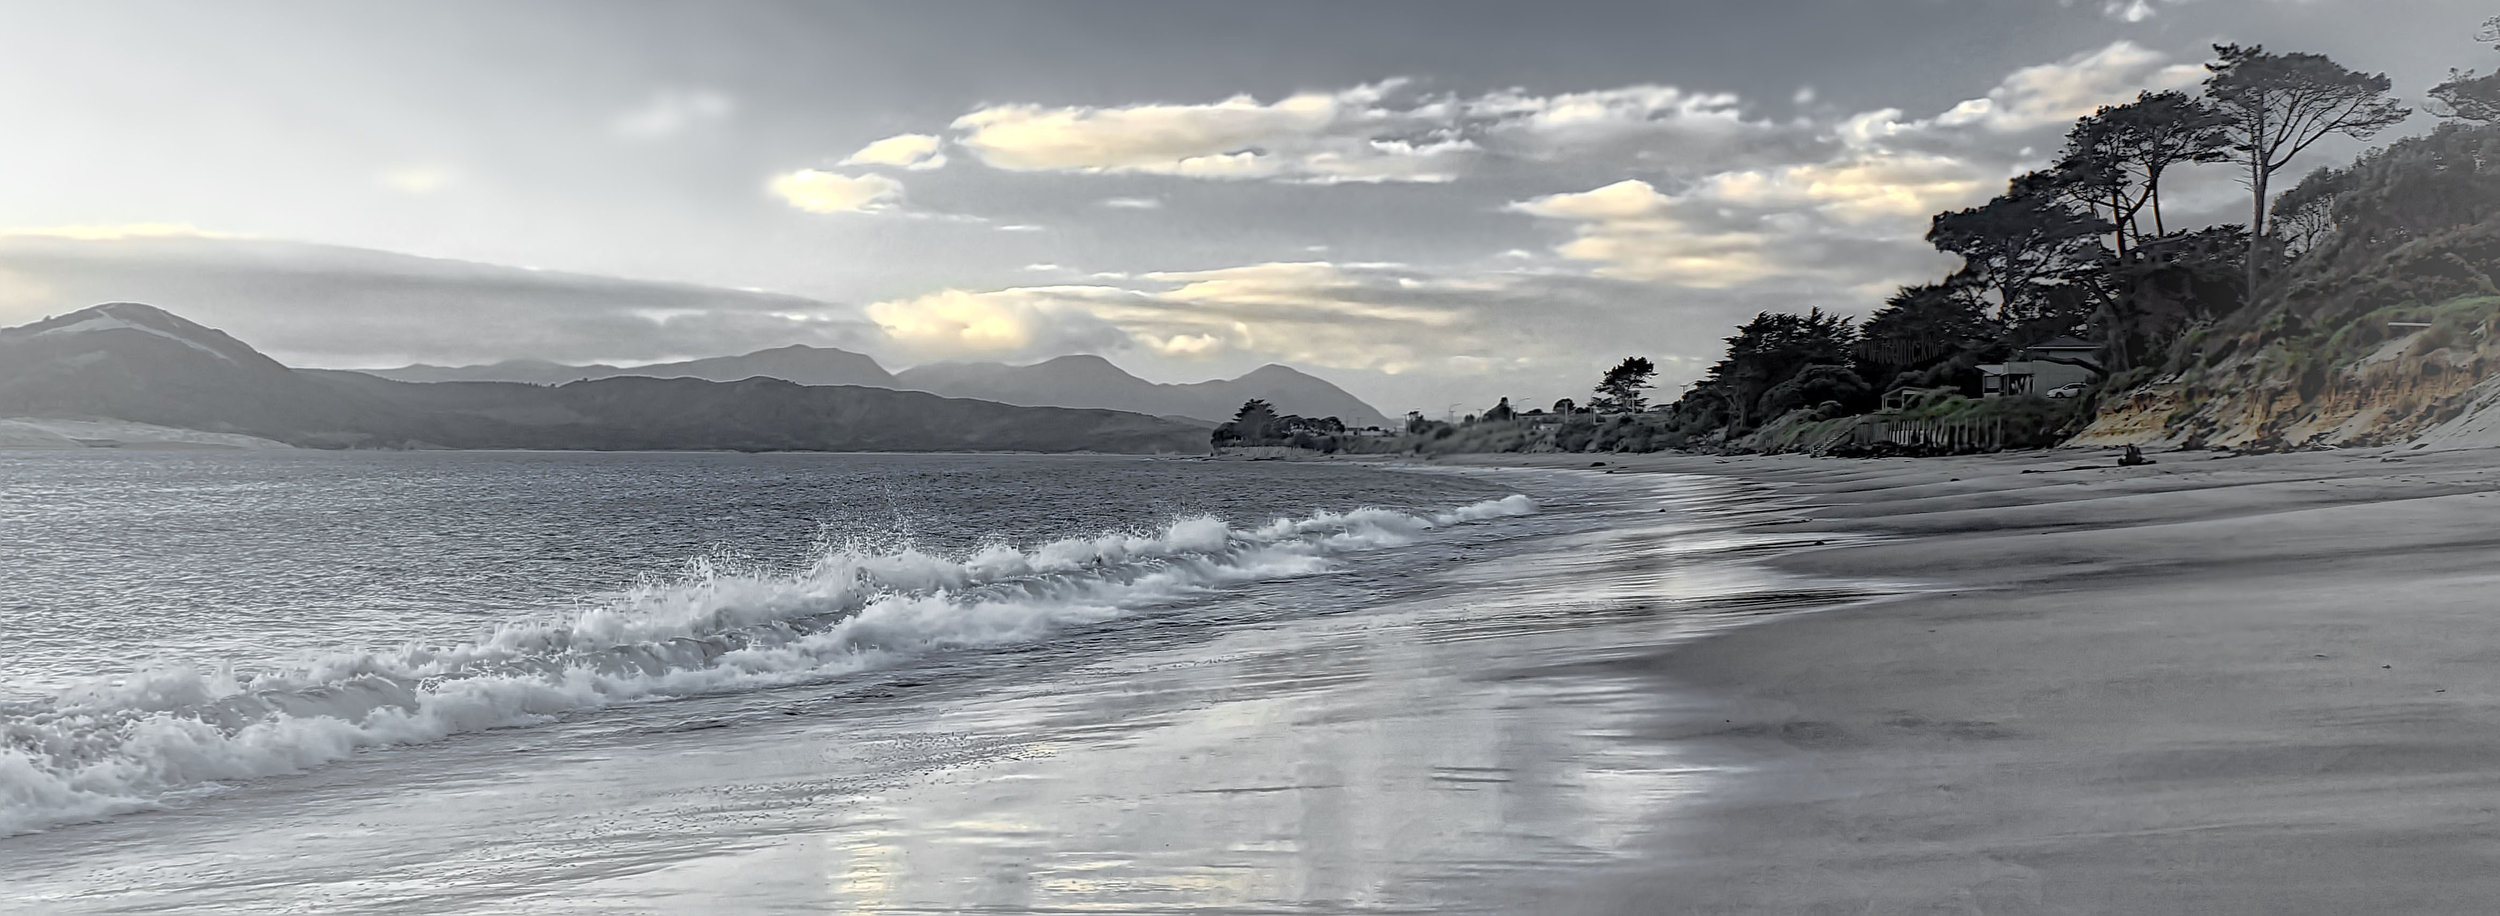 Dusk at the beach; Omāpere, Northland, New Zealand